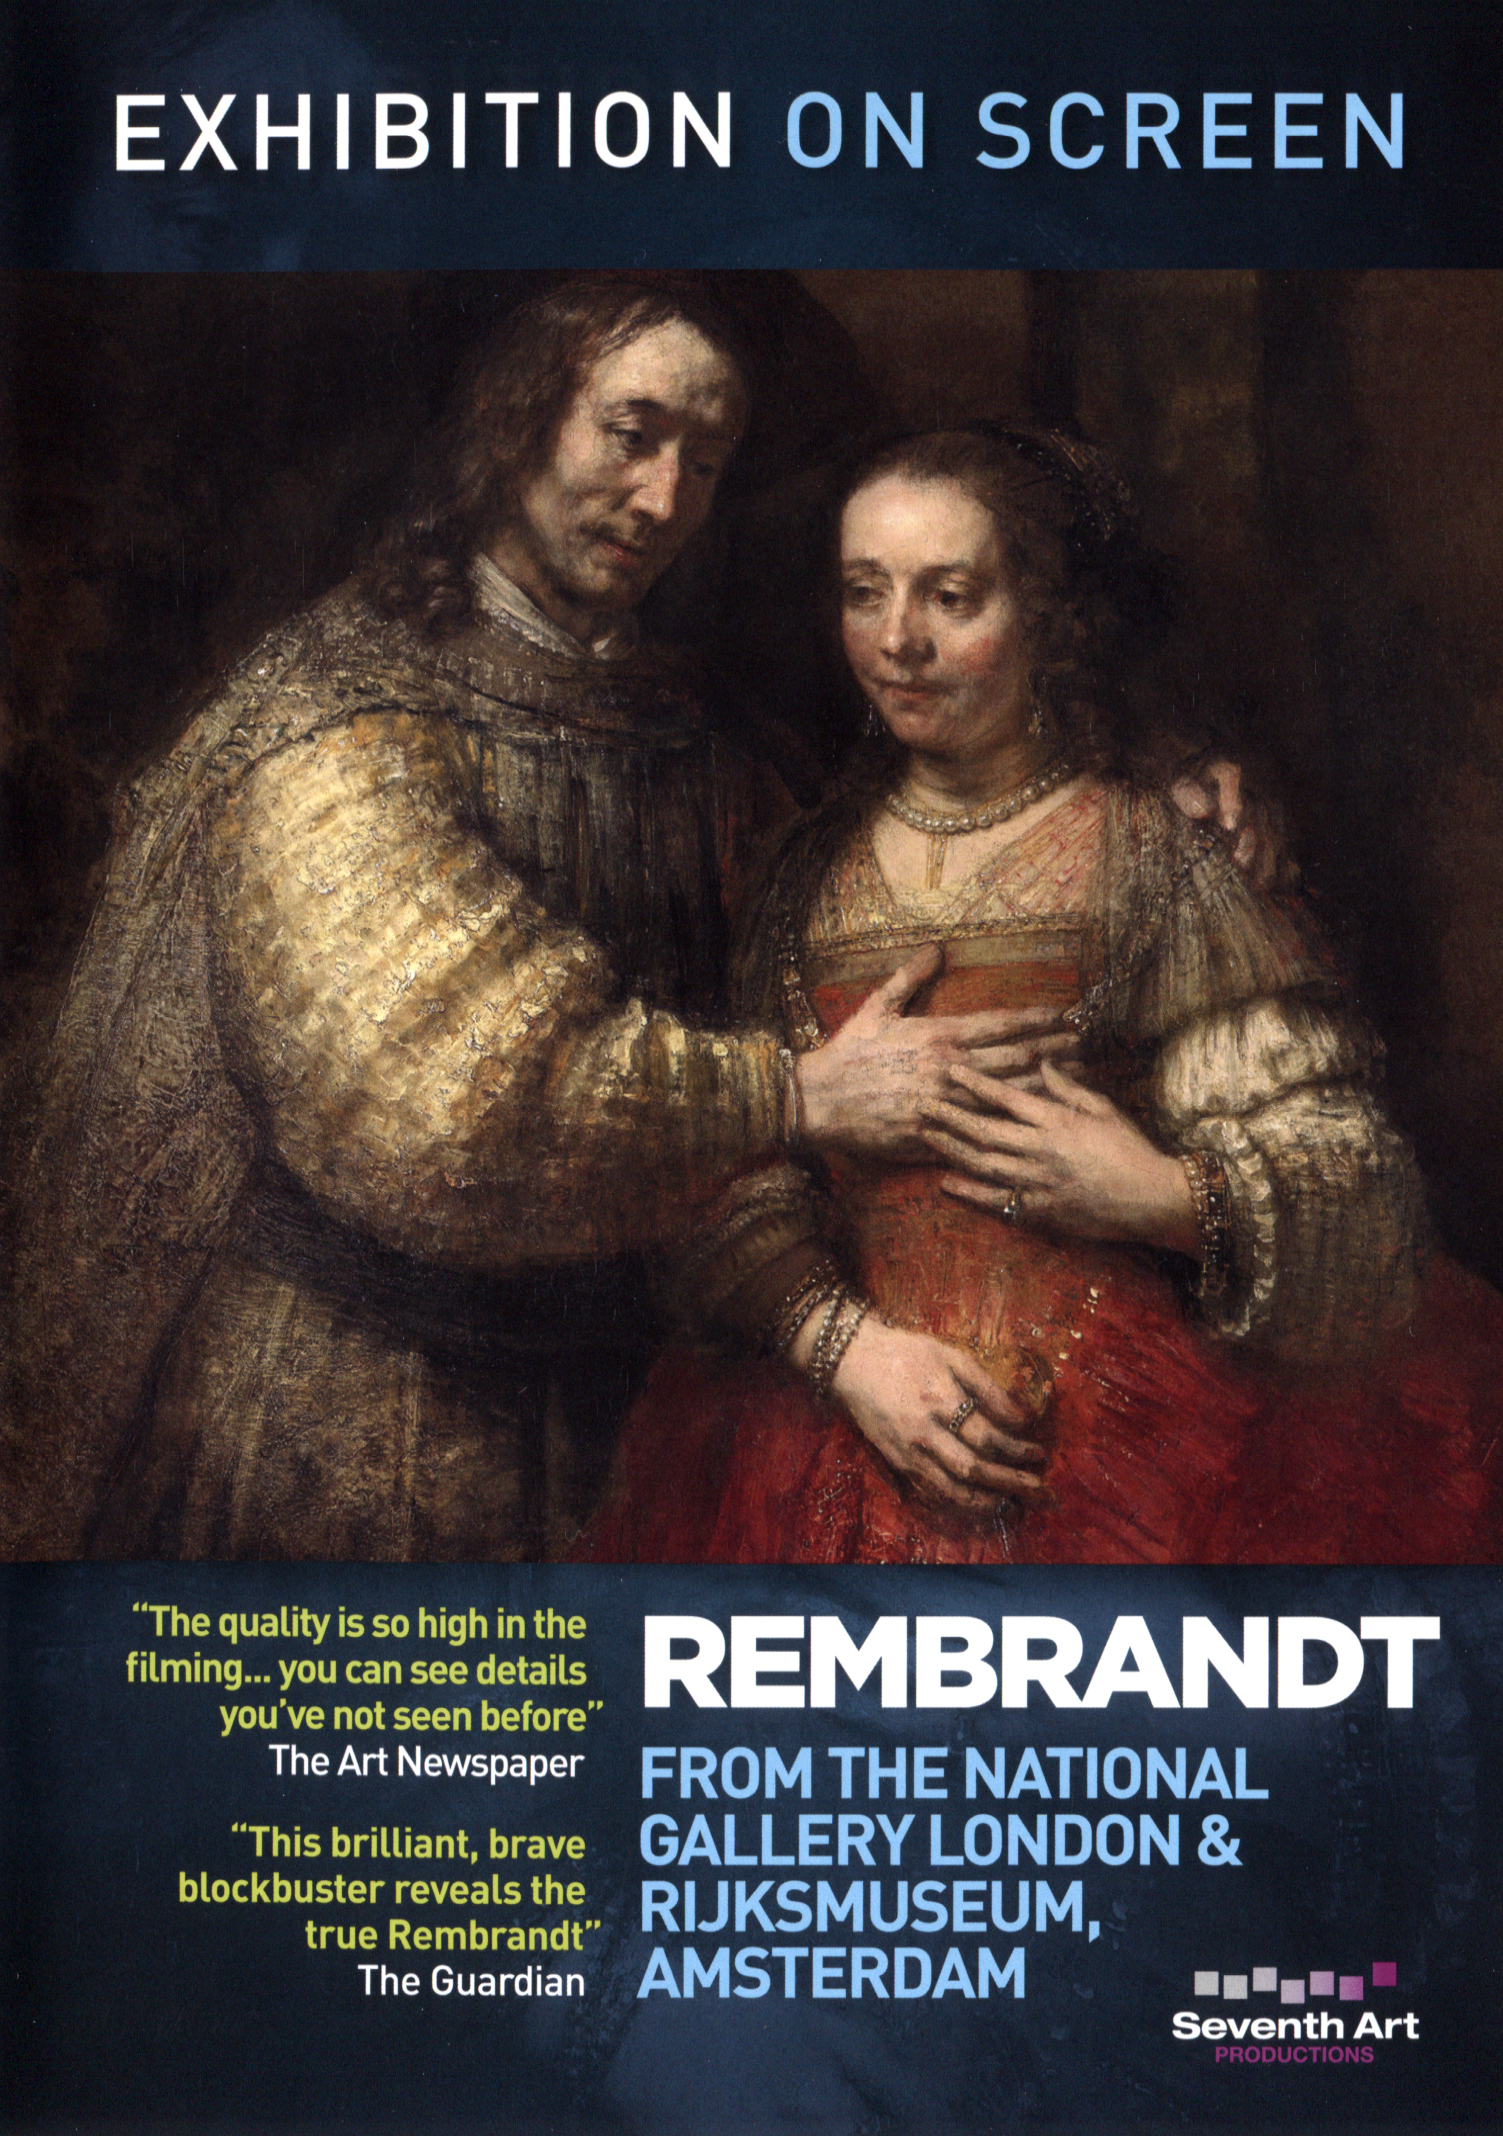 Exhibition on Screen: Rembrandt - From the National Gallery London & Rijksmuseum, Amsterdam